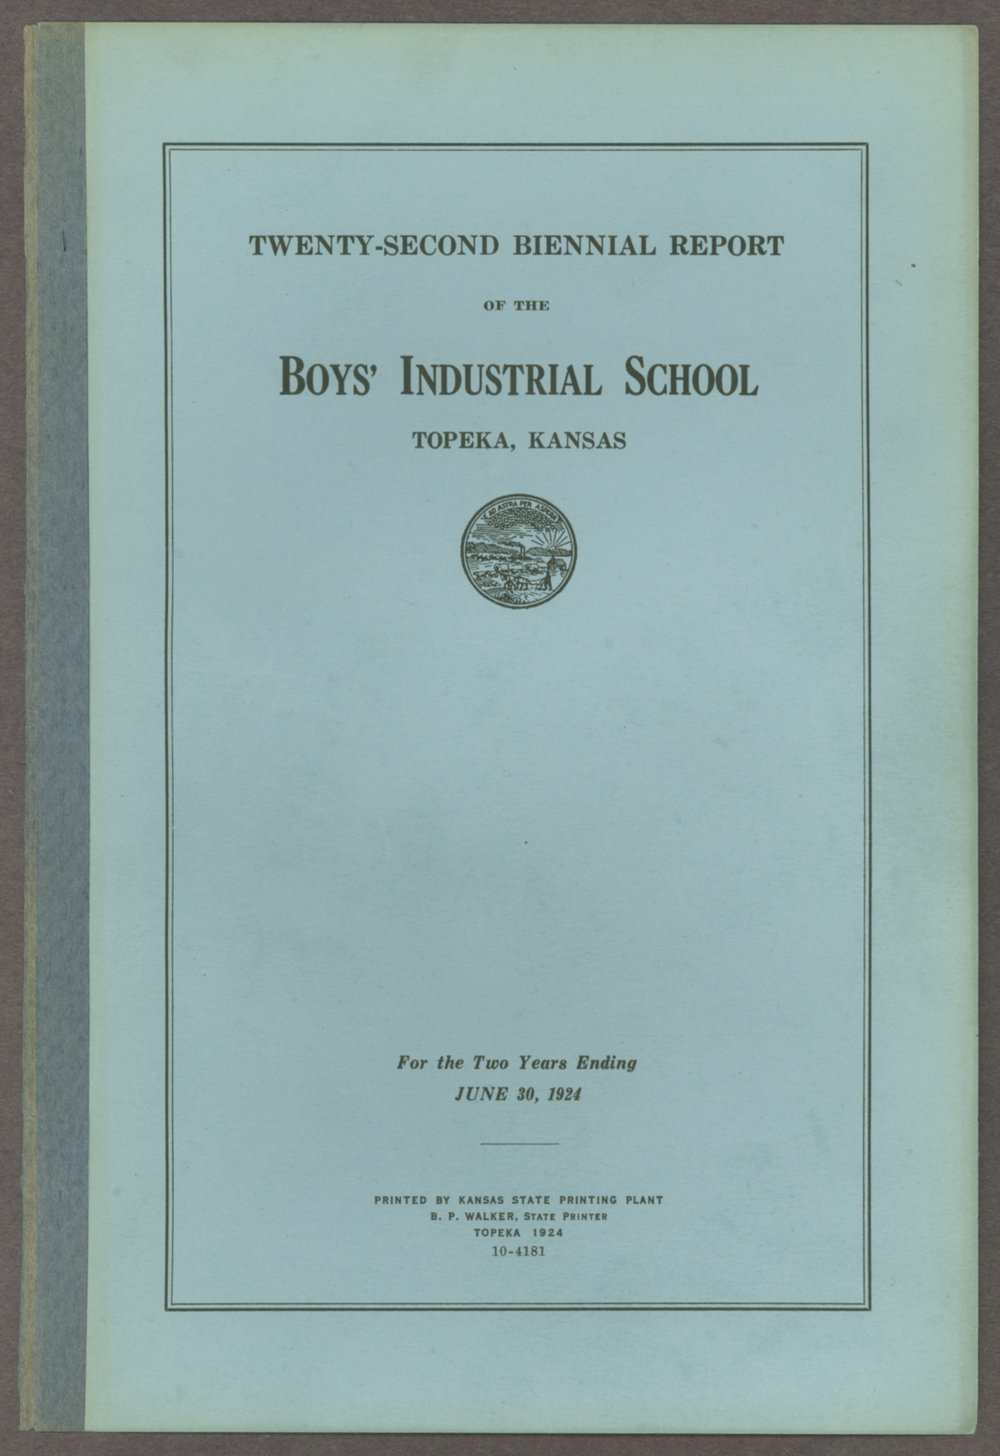 Biennial report of the Boys Industrial School, 1924 - Front Cover